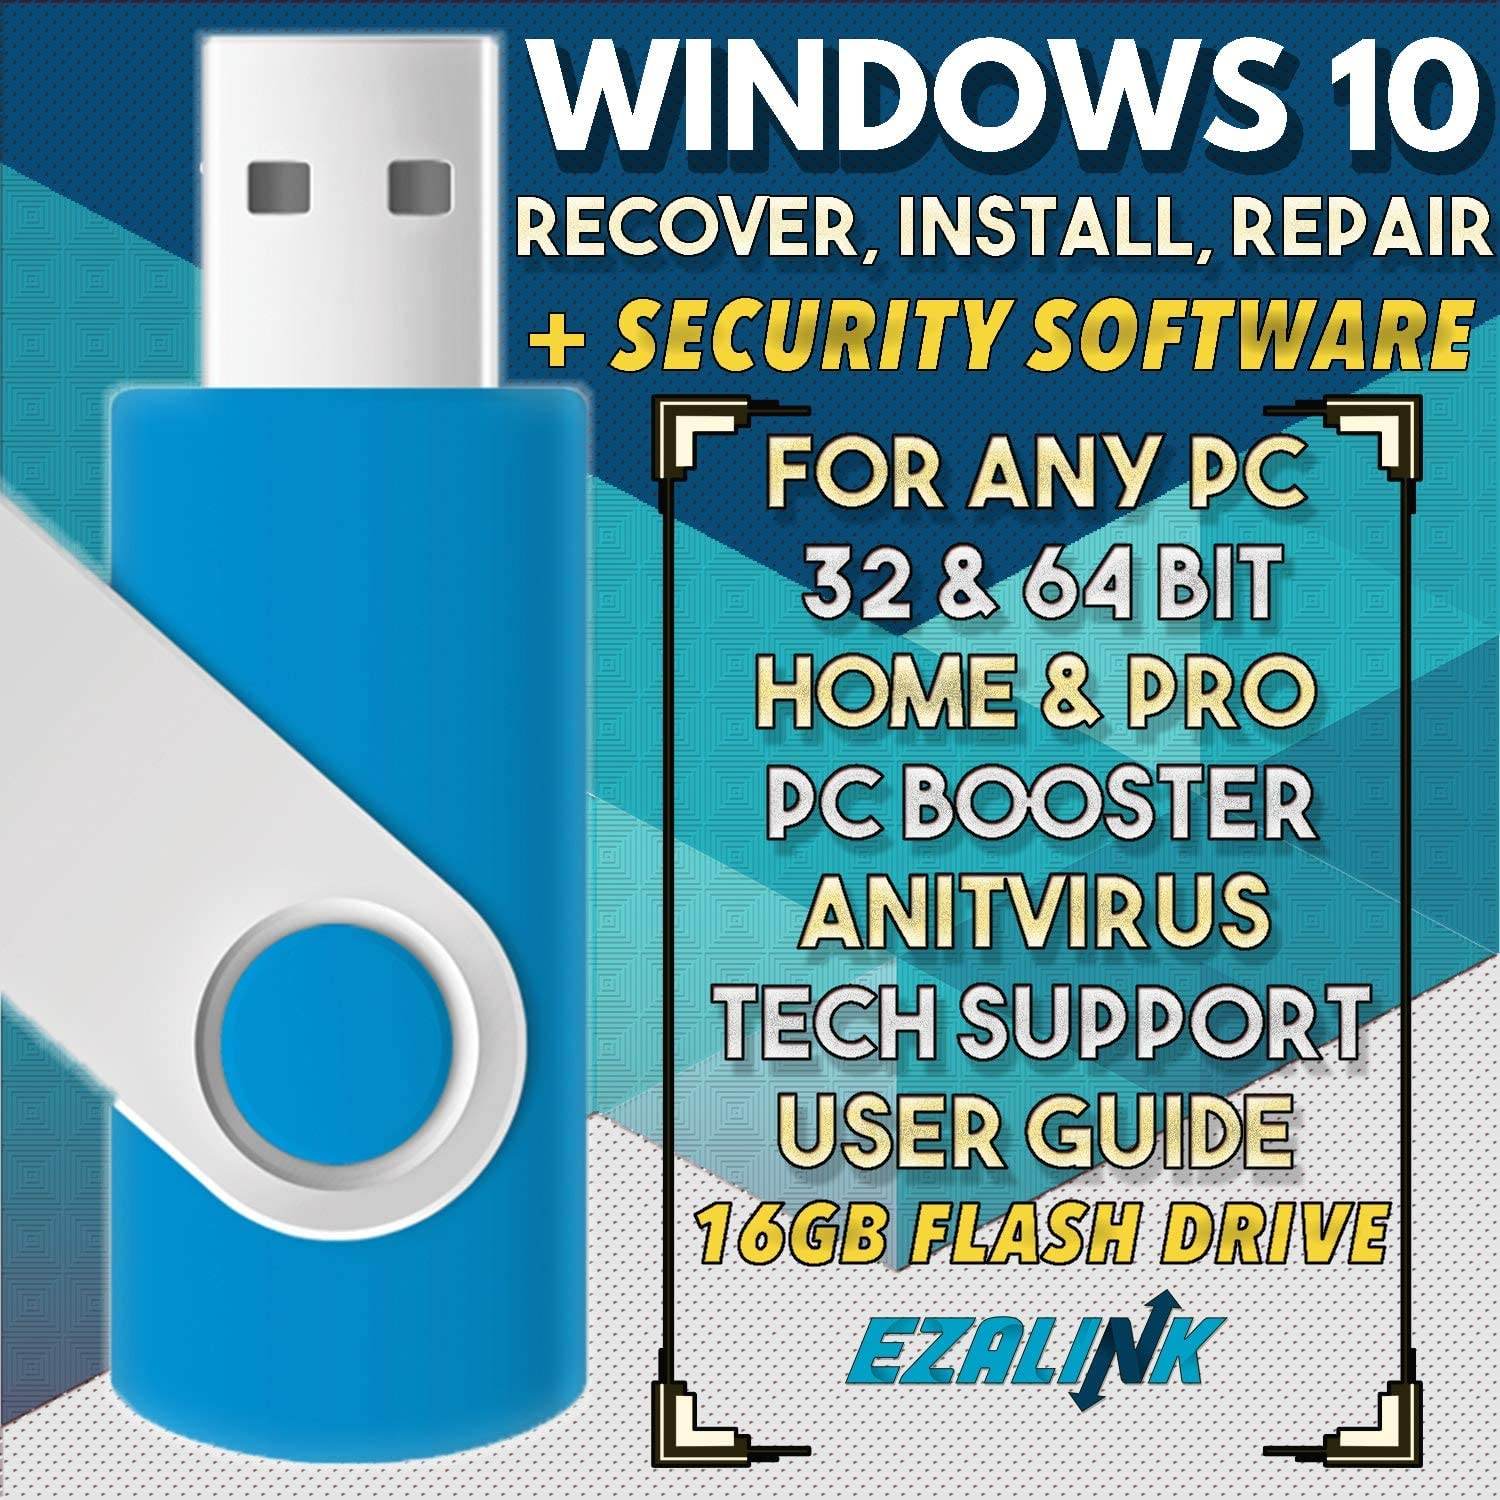 Ezalink USB for Windows 10 Repair Recovery Install Restore Boot Fix Flash Drive | 32 & 64 Bit Systems Home & Professional All Brands w/ AntiVirus and Support